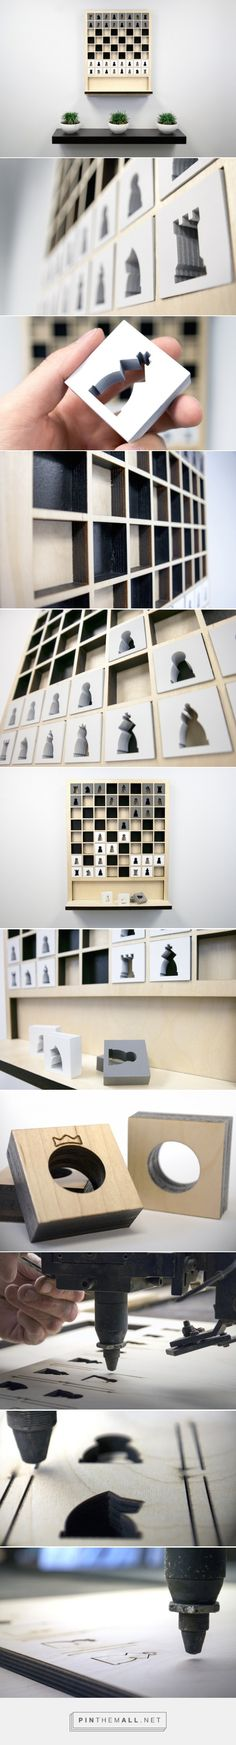 Wall Hanging Chess Board